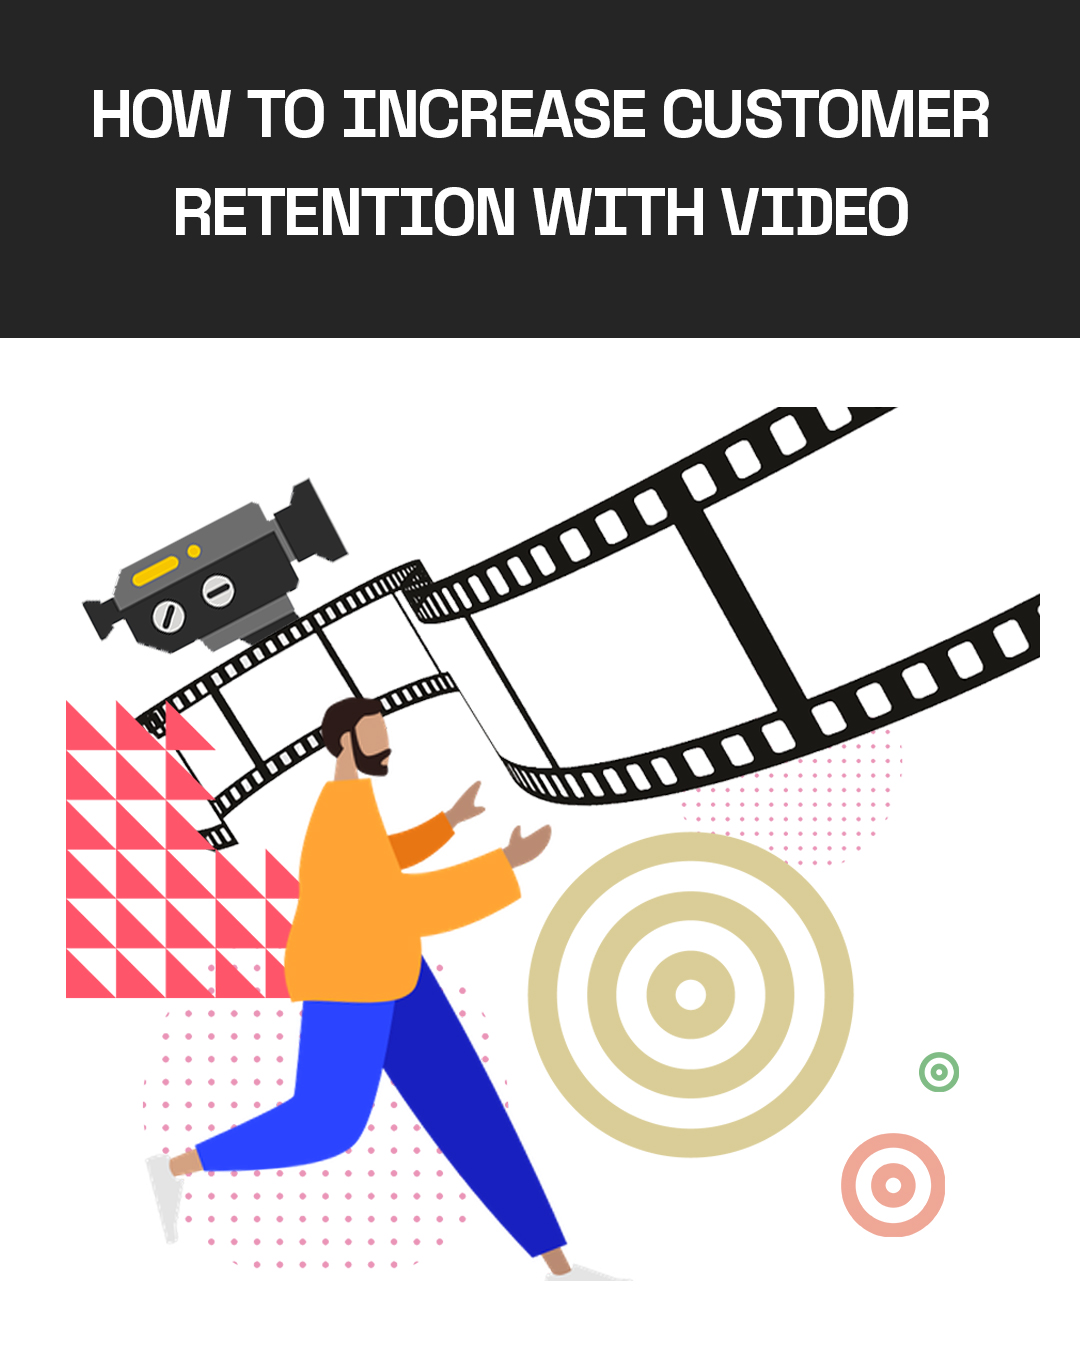 How Video Marketing Increases Customer Retention Rates